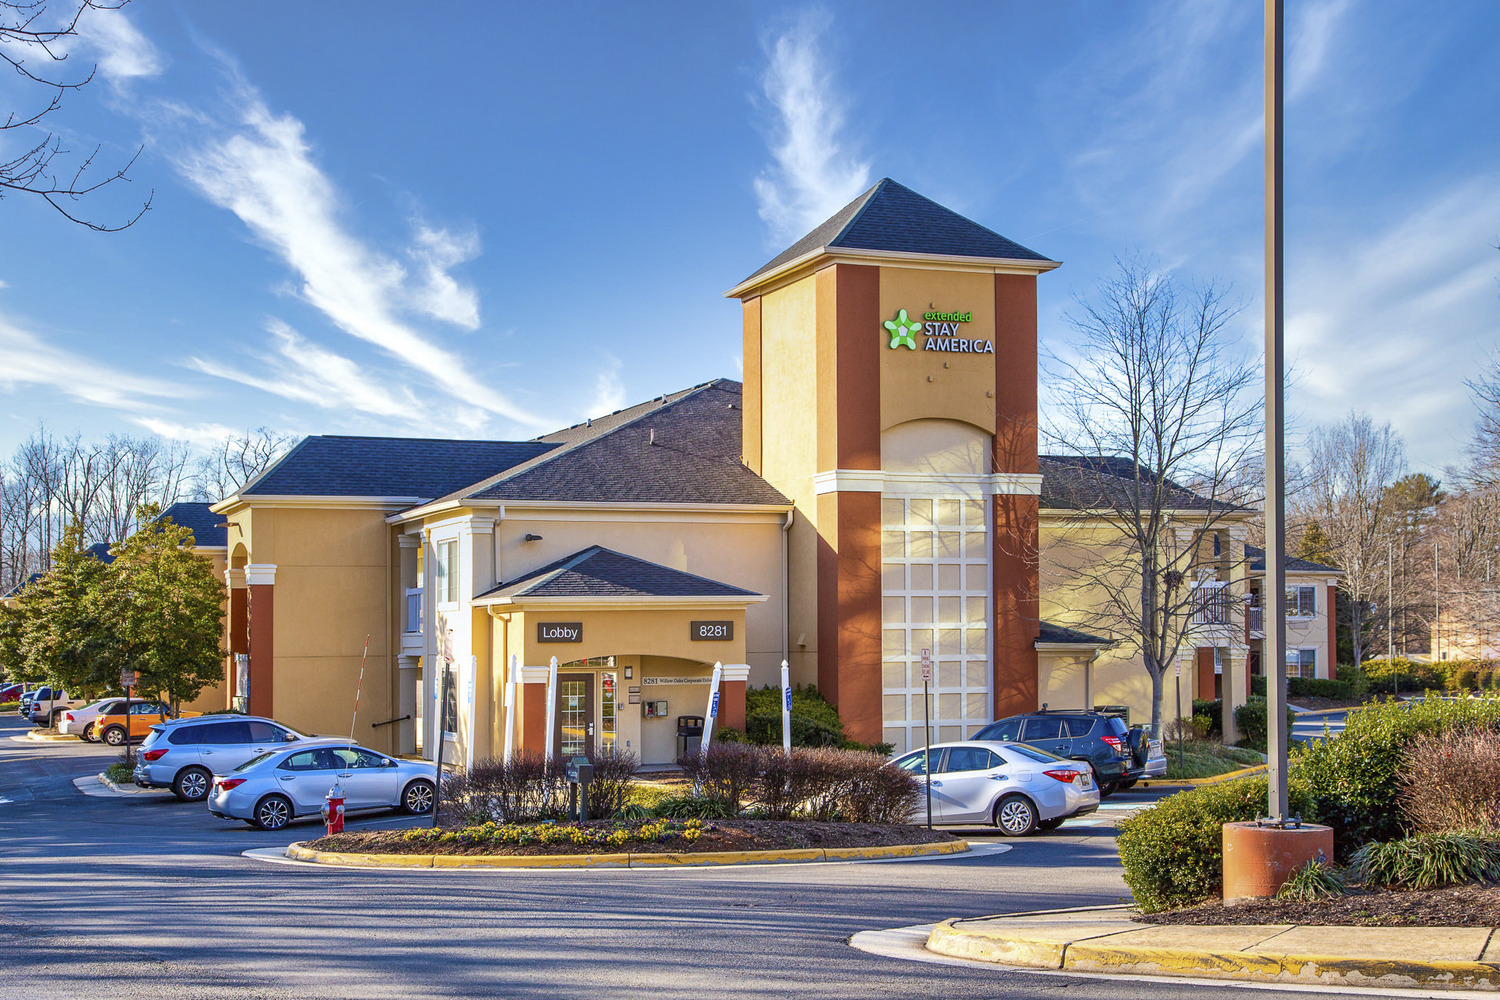 CBG builds Extended Stay America at Merrifield, a 133-Unit Extended Stay Hotel in Fairfax, VA